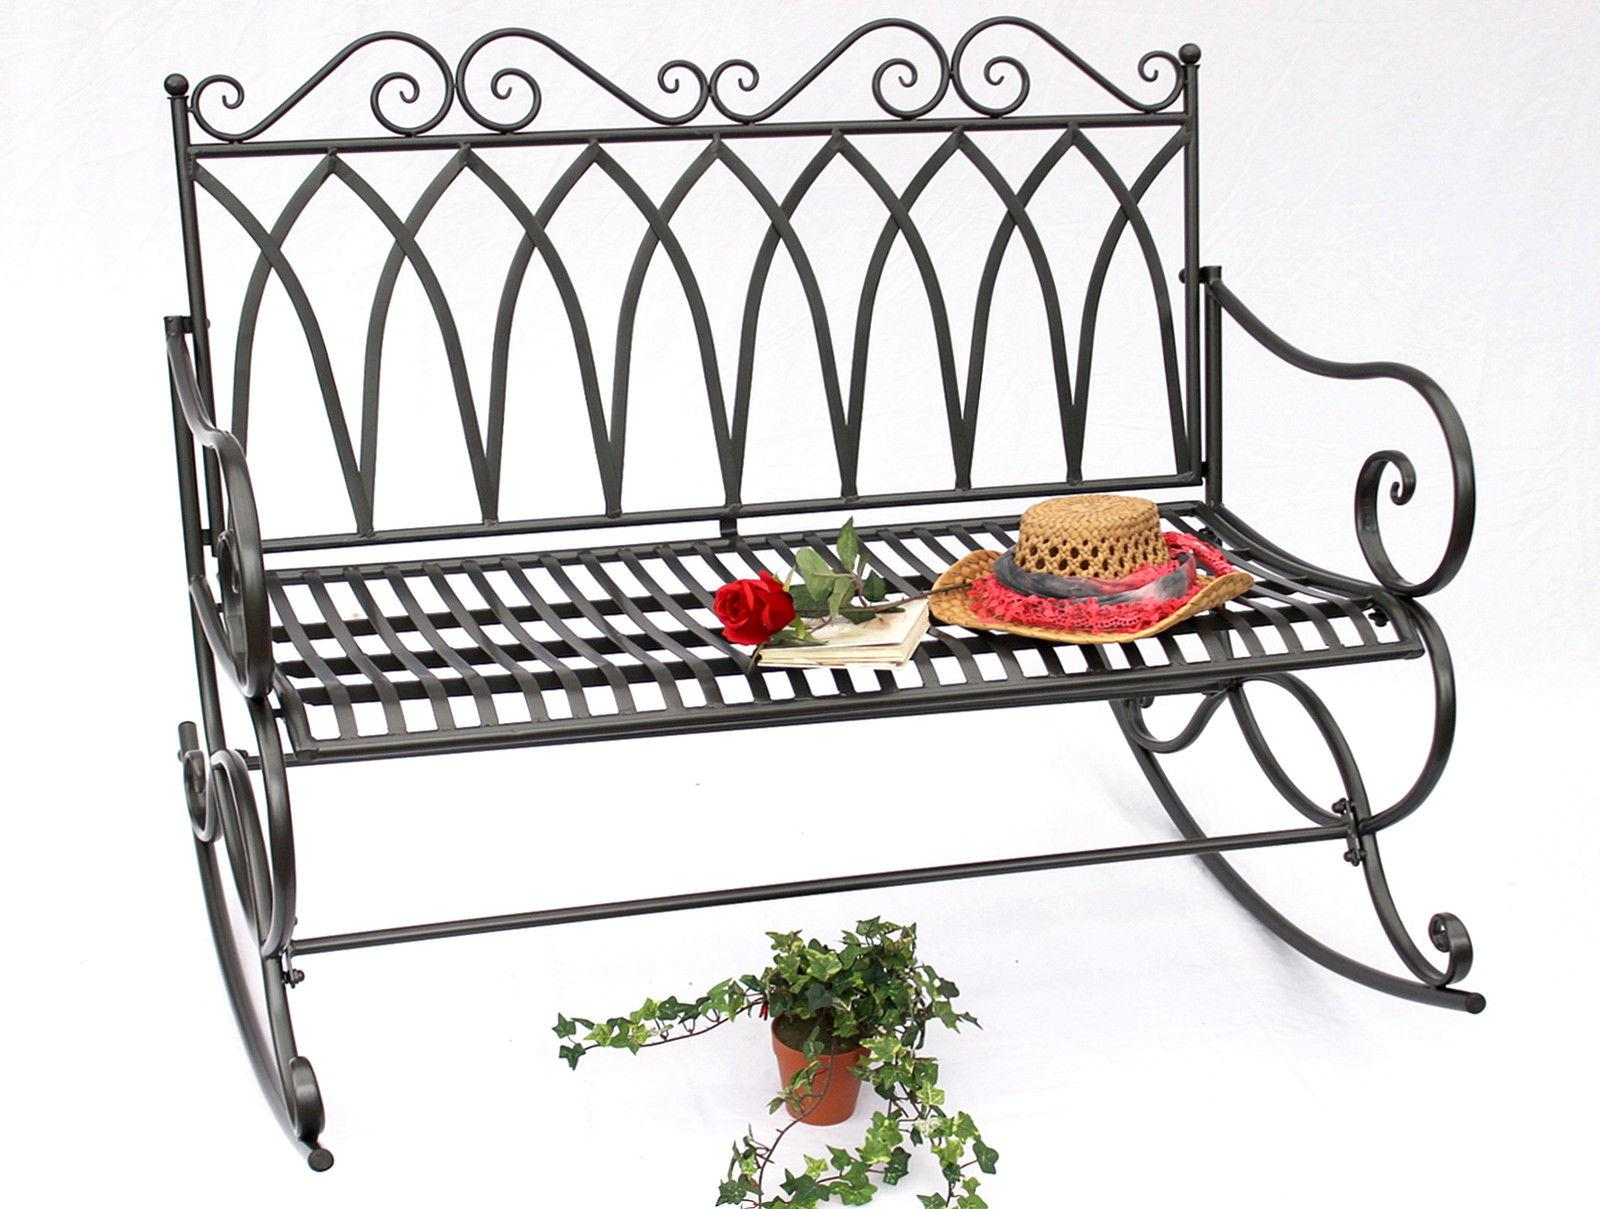 schaukelbank 132730 gartenbank aus metall bank 112 cm sitzbank garten schaukel 4260407930218 ebay. Black Bedroom Furniture Sets. Home Design Ideas